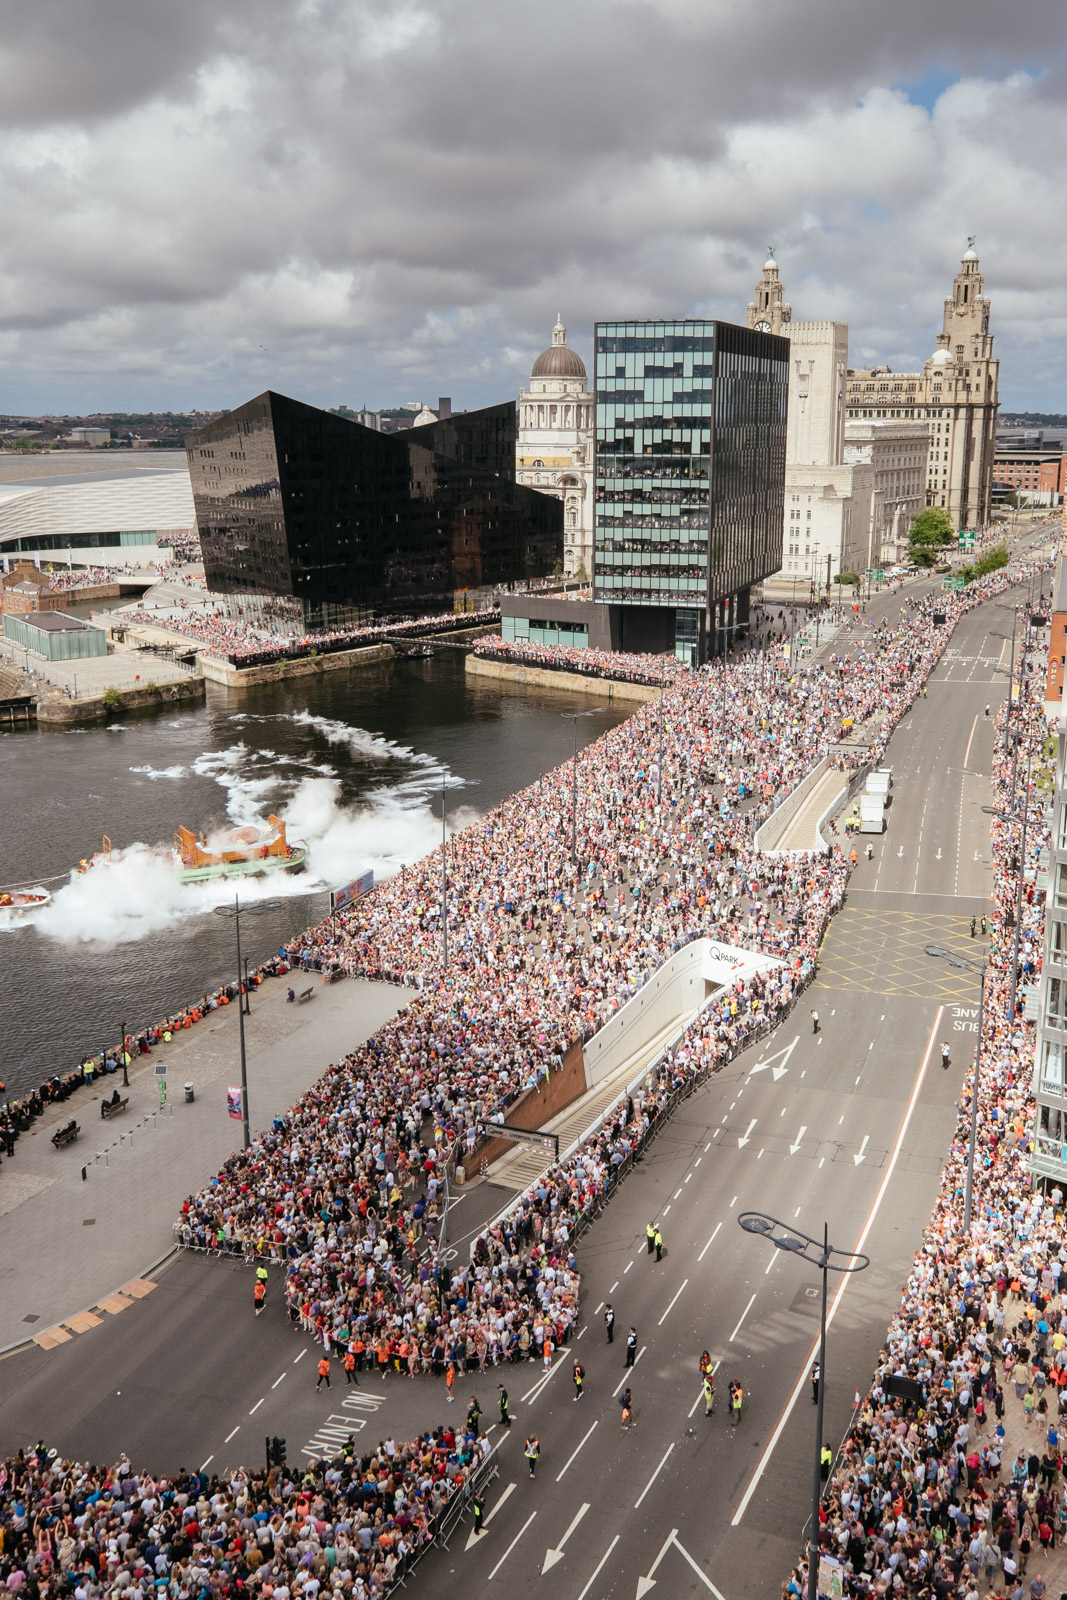 giants-liverpool-sunday-2014-pete-carr-3183